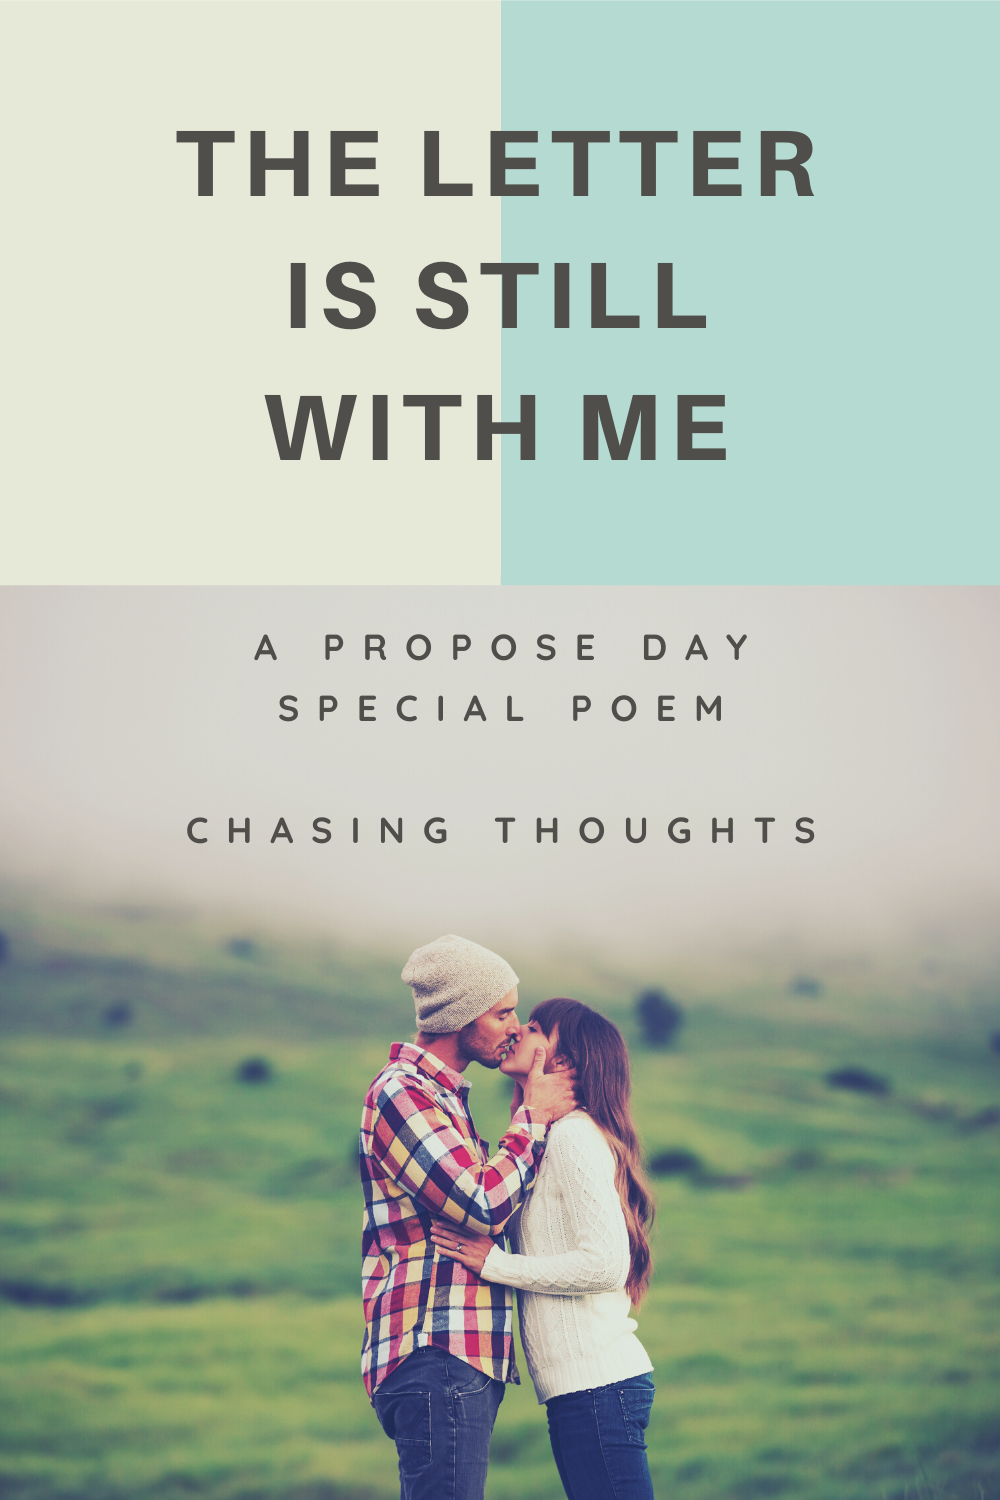 That Letter Is Still With Me Propose Day Poem Communication In Marriage Relationship Funny Marriage Advice